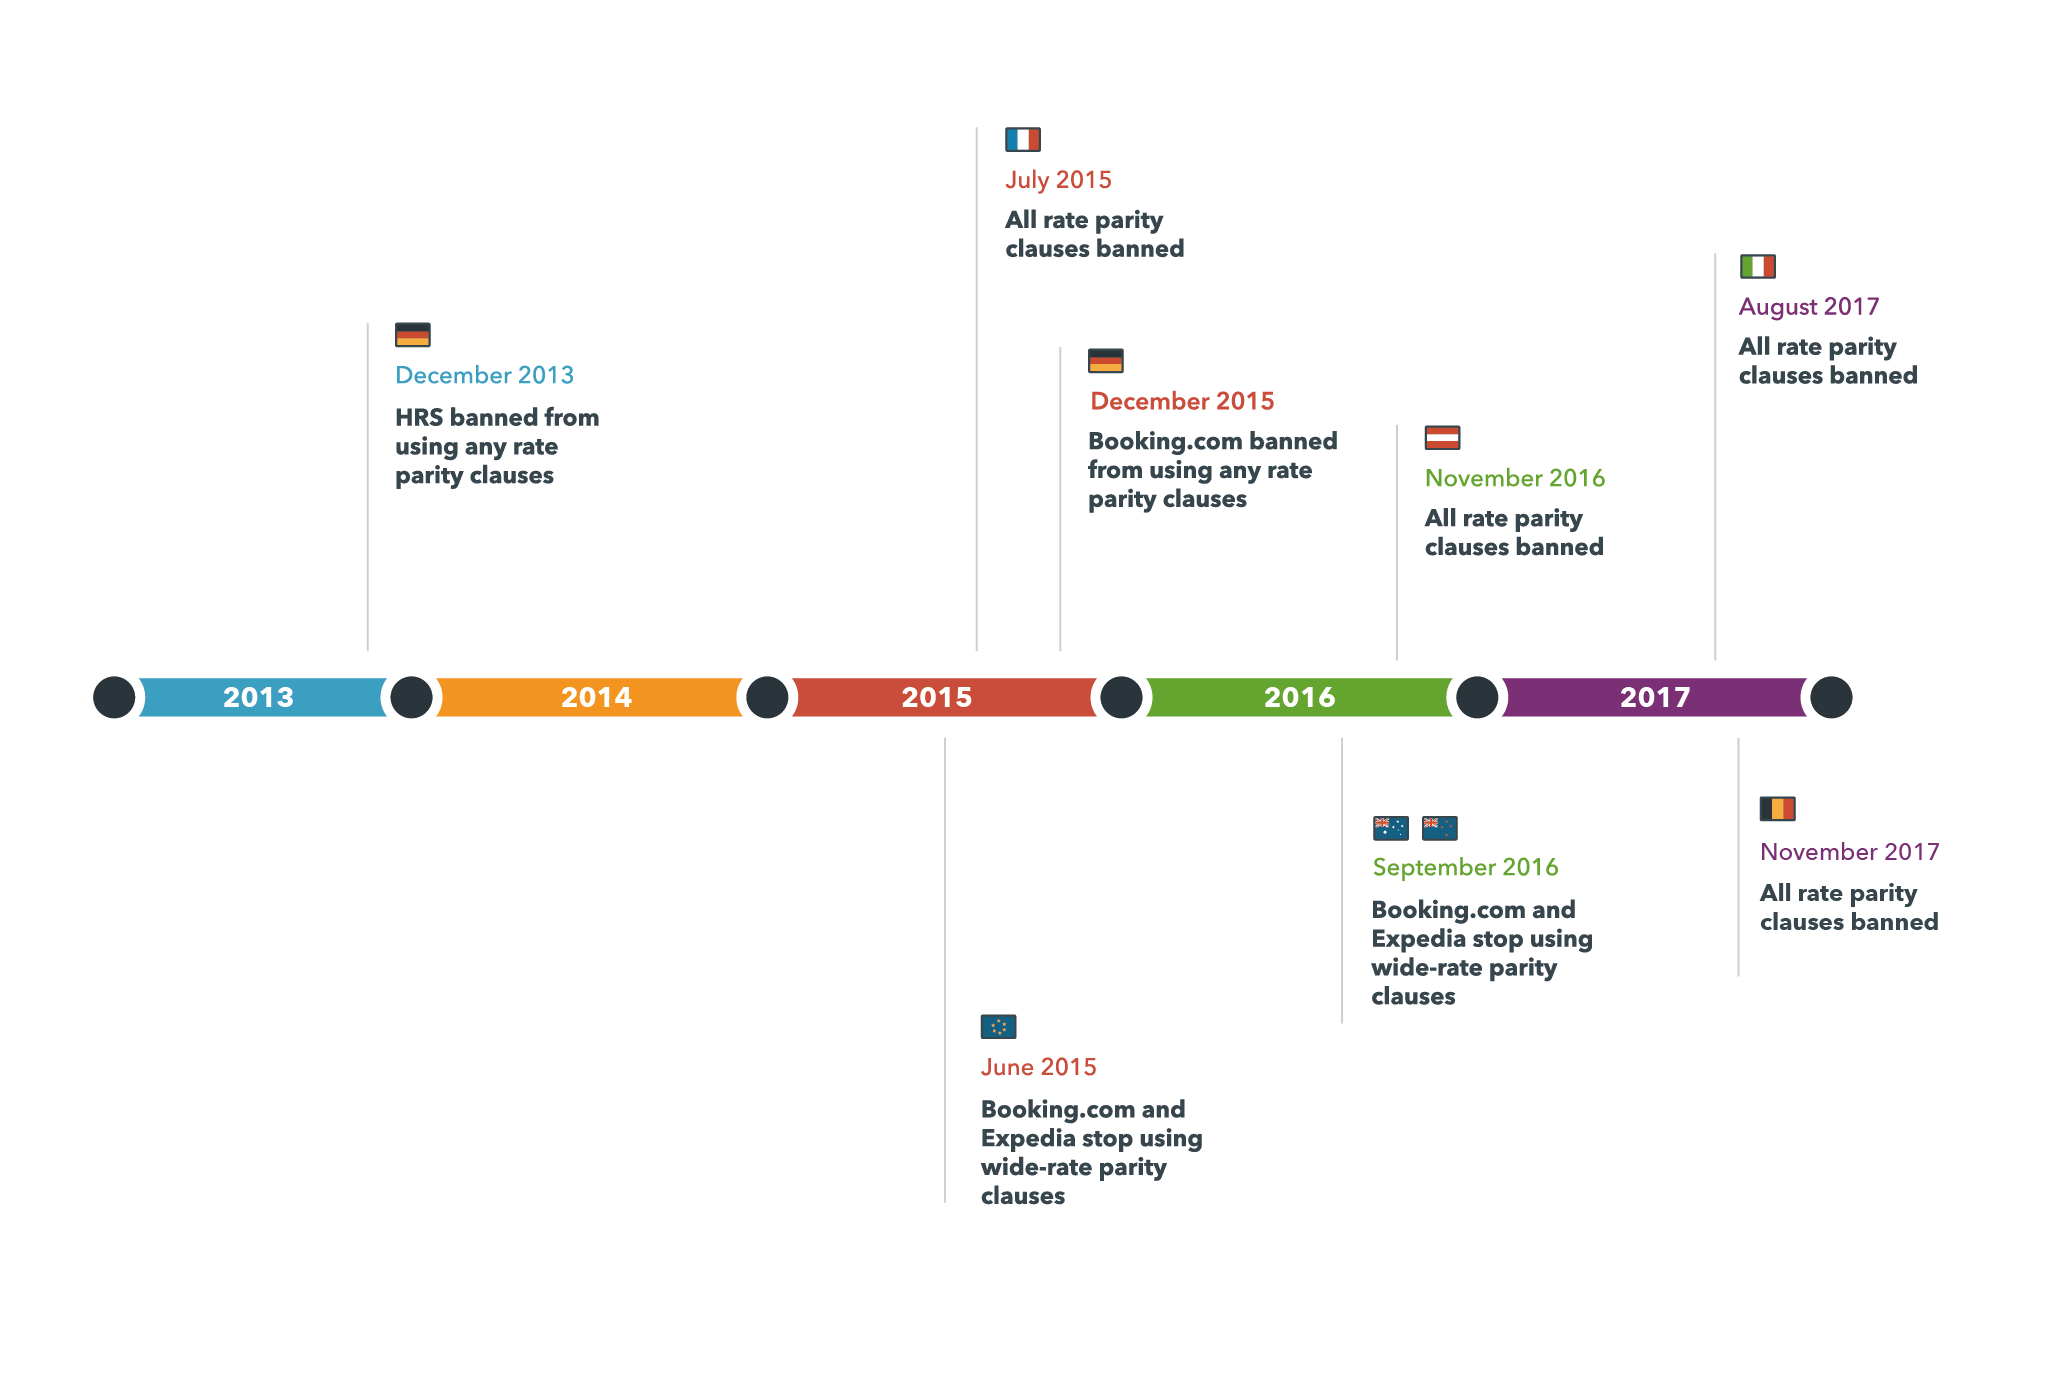 a timeline shows when countries banned rate parity